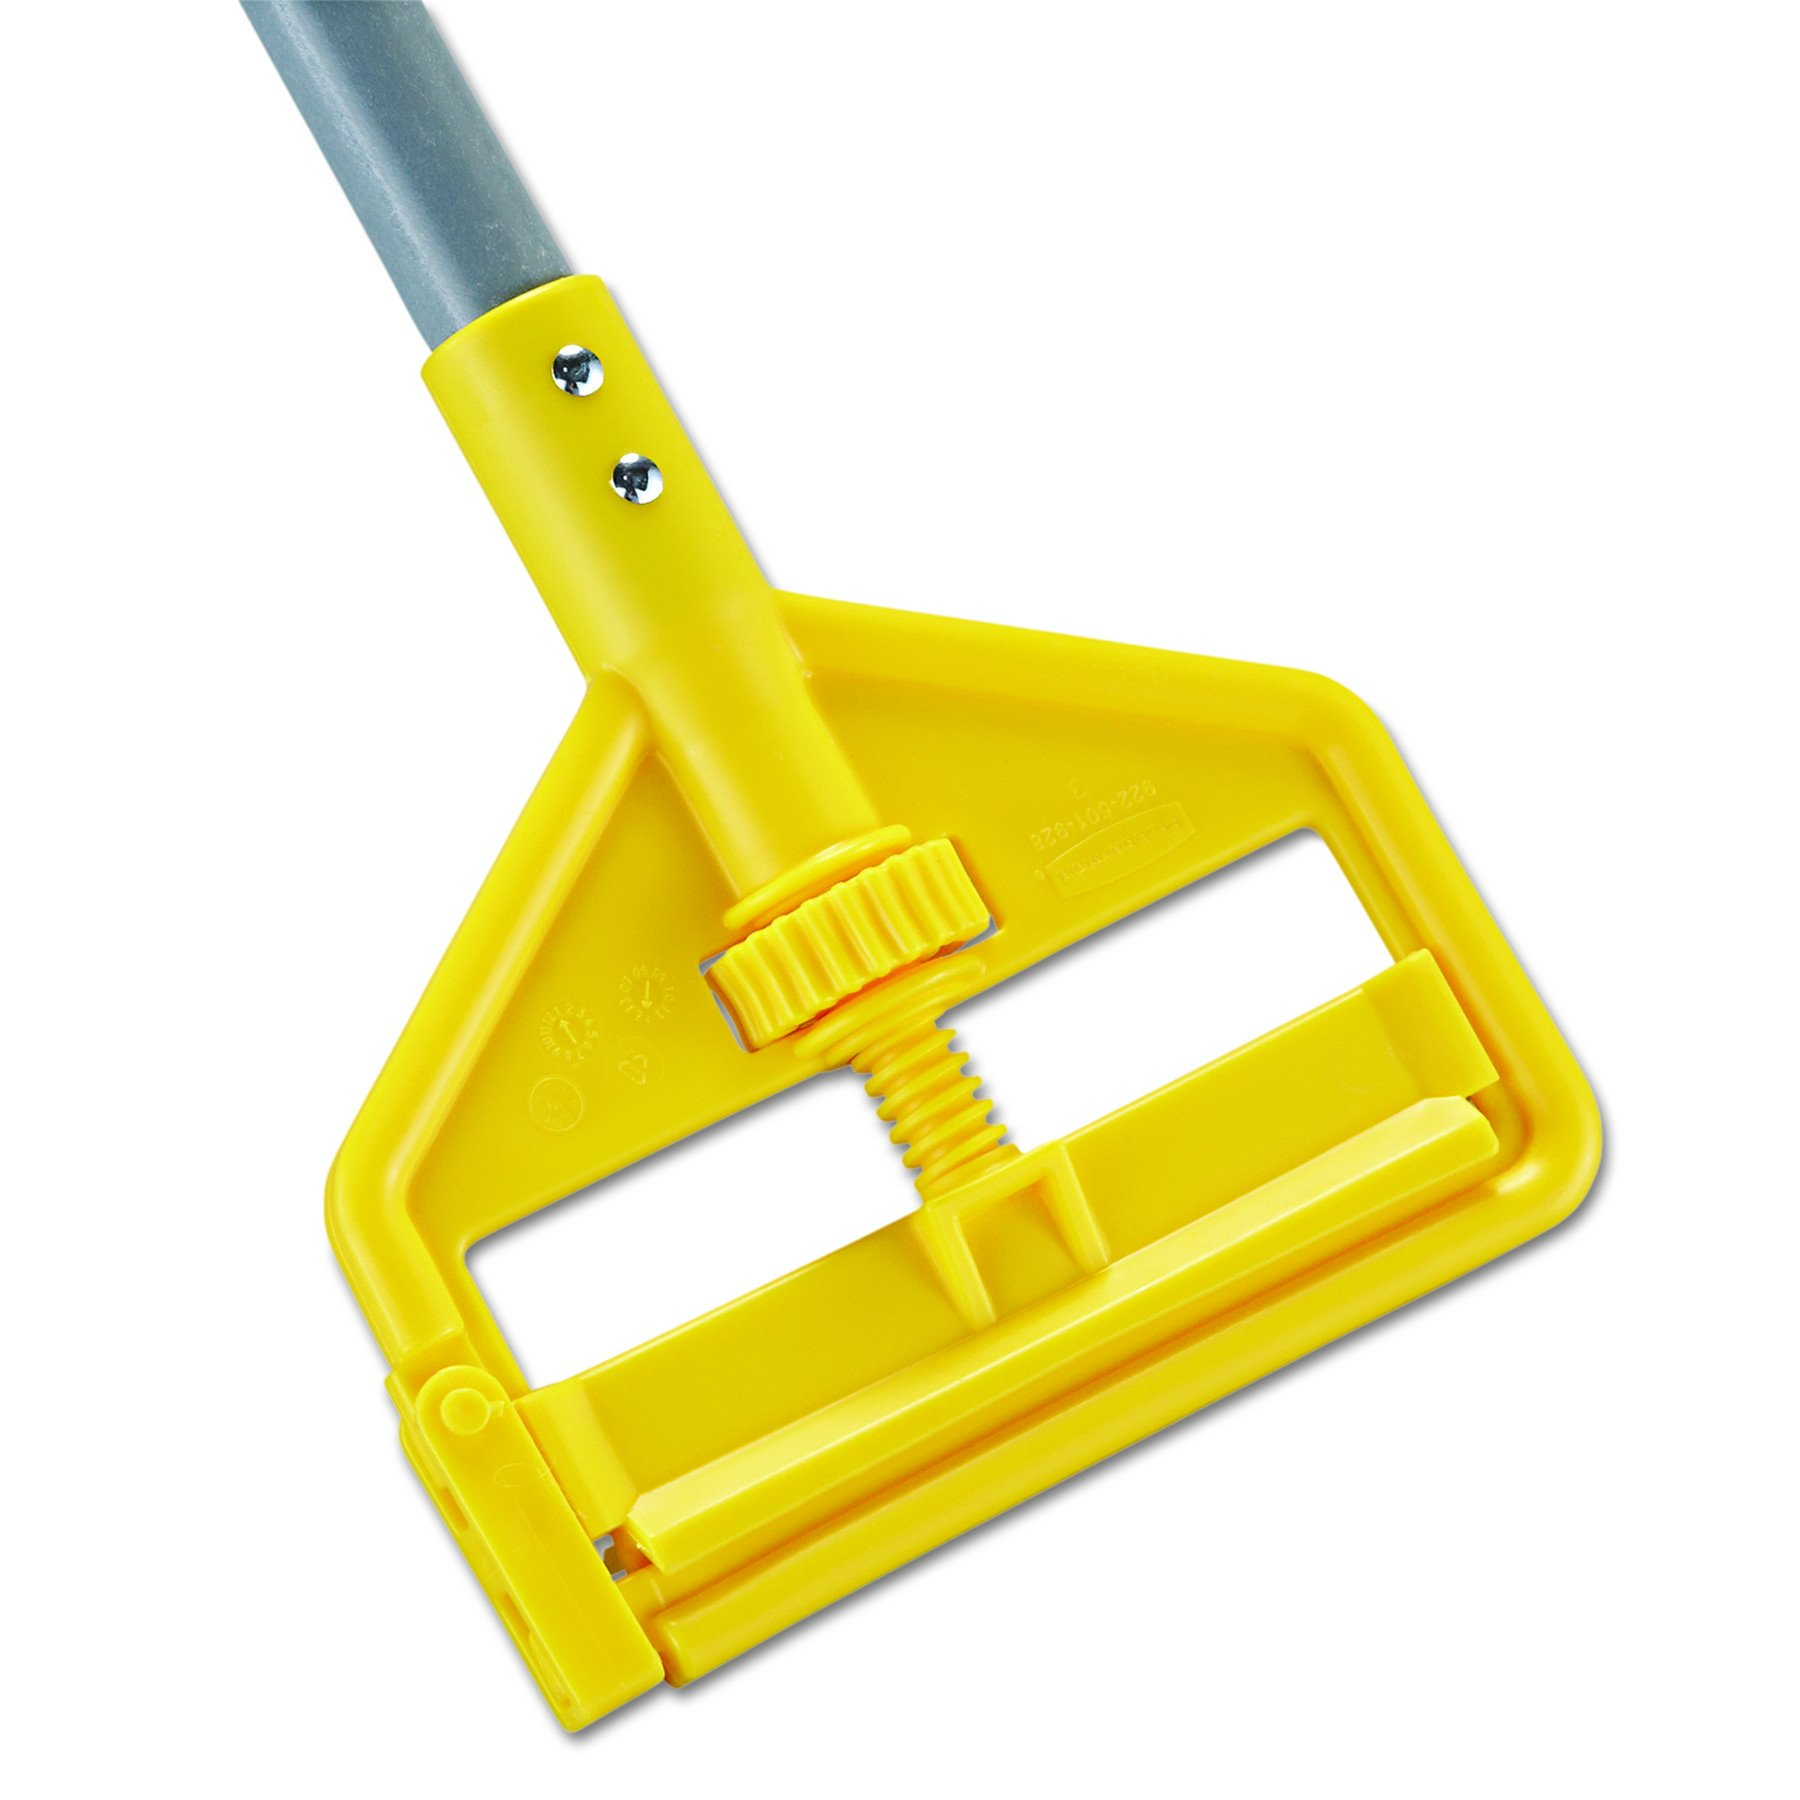 Rubbermaid Commercial RCP H146 Invader Fiberglass Side-Gate Wet-Mop Handle, 1'' Diameter x 60', Gray/Yellow